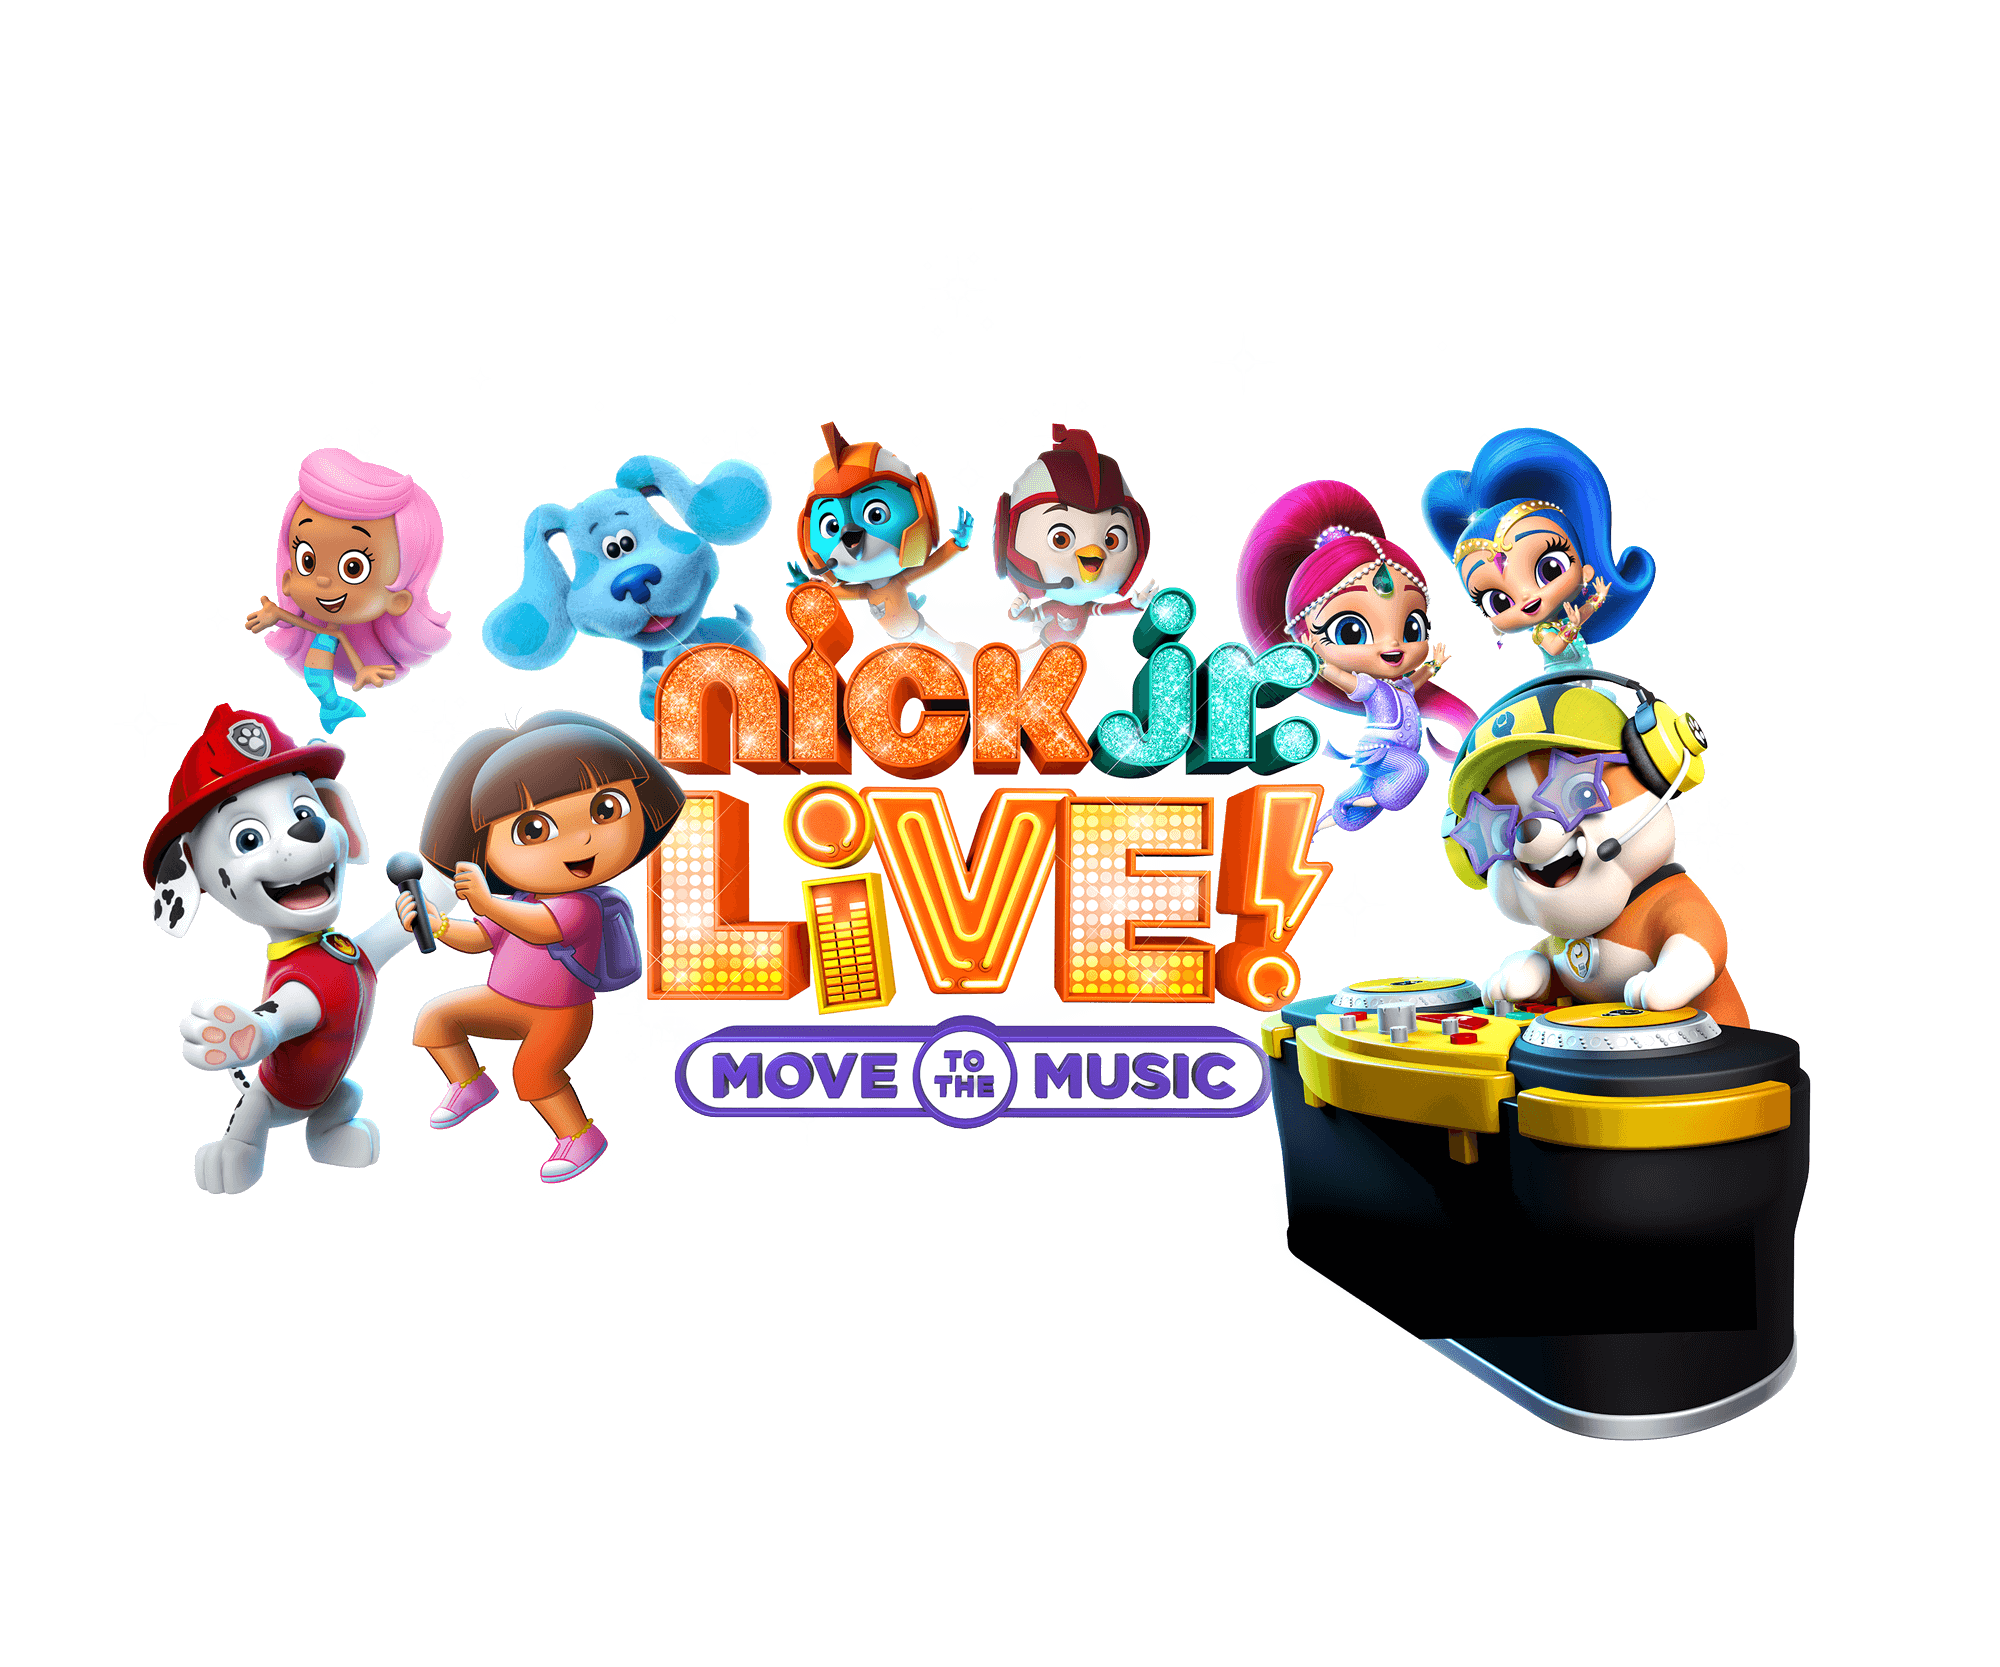 Nick jr. live! Move to the music.